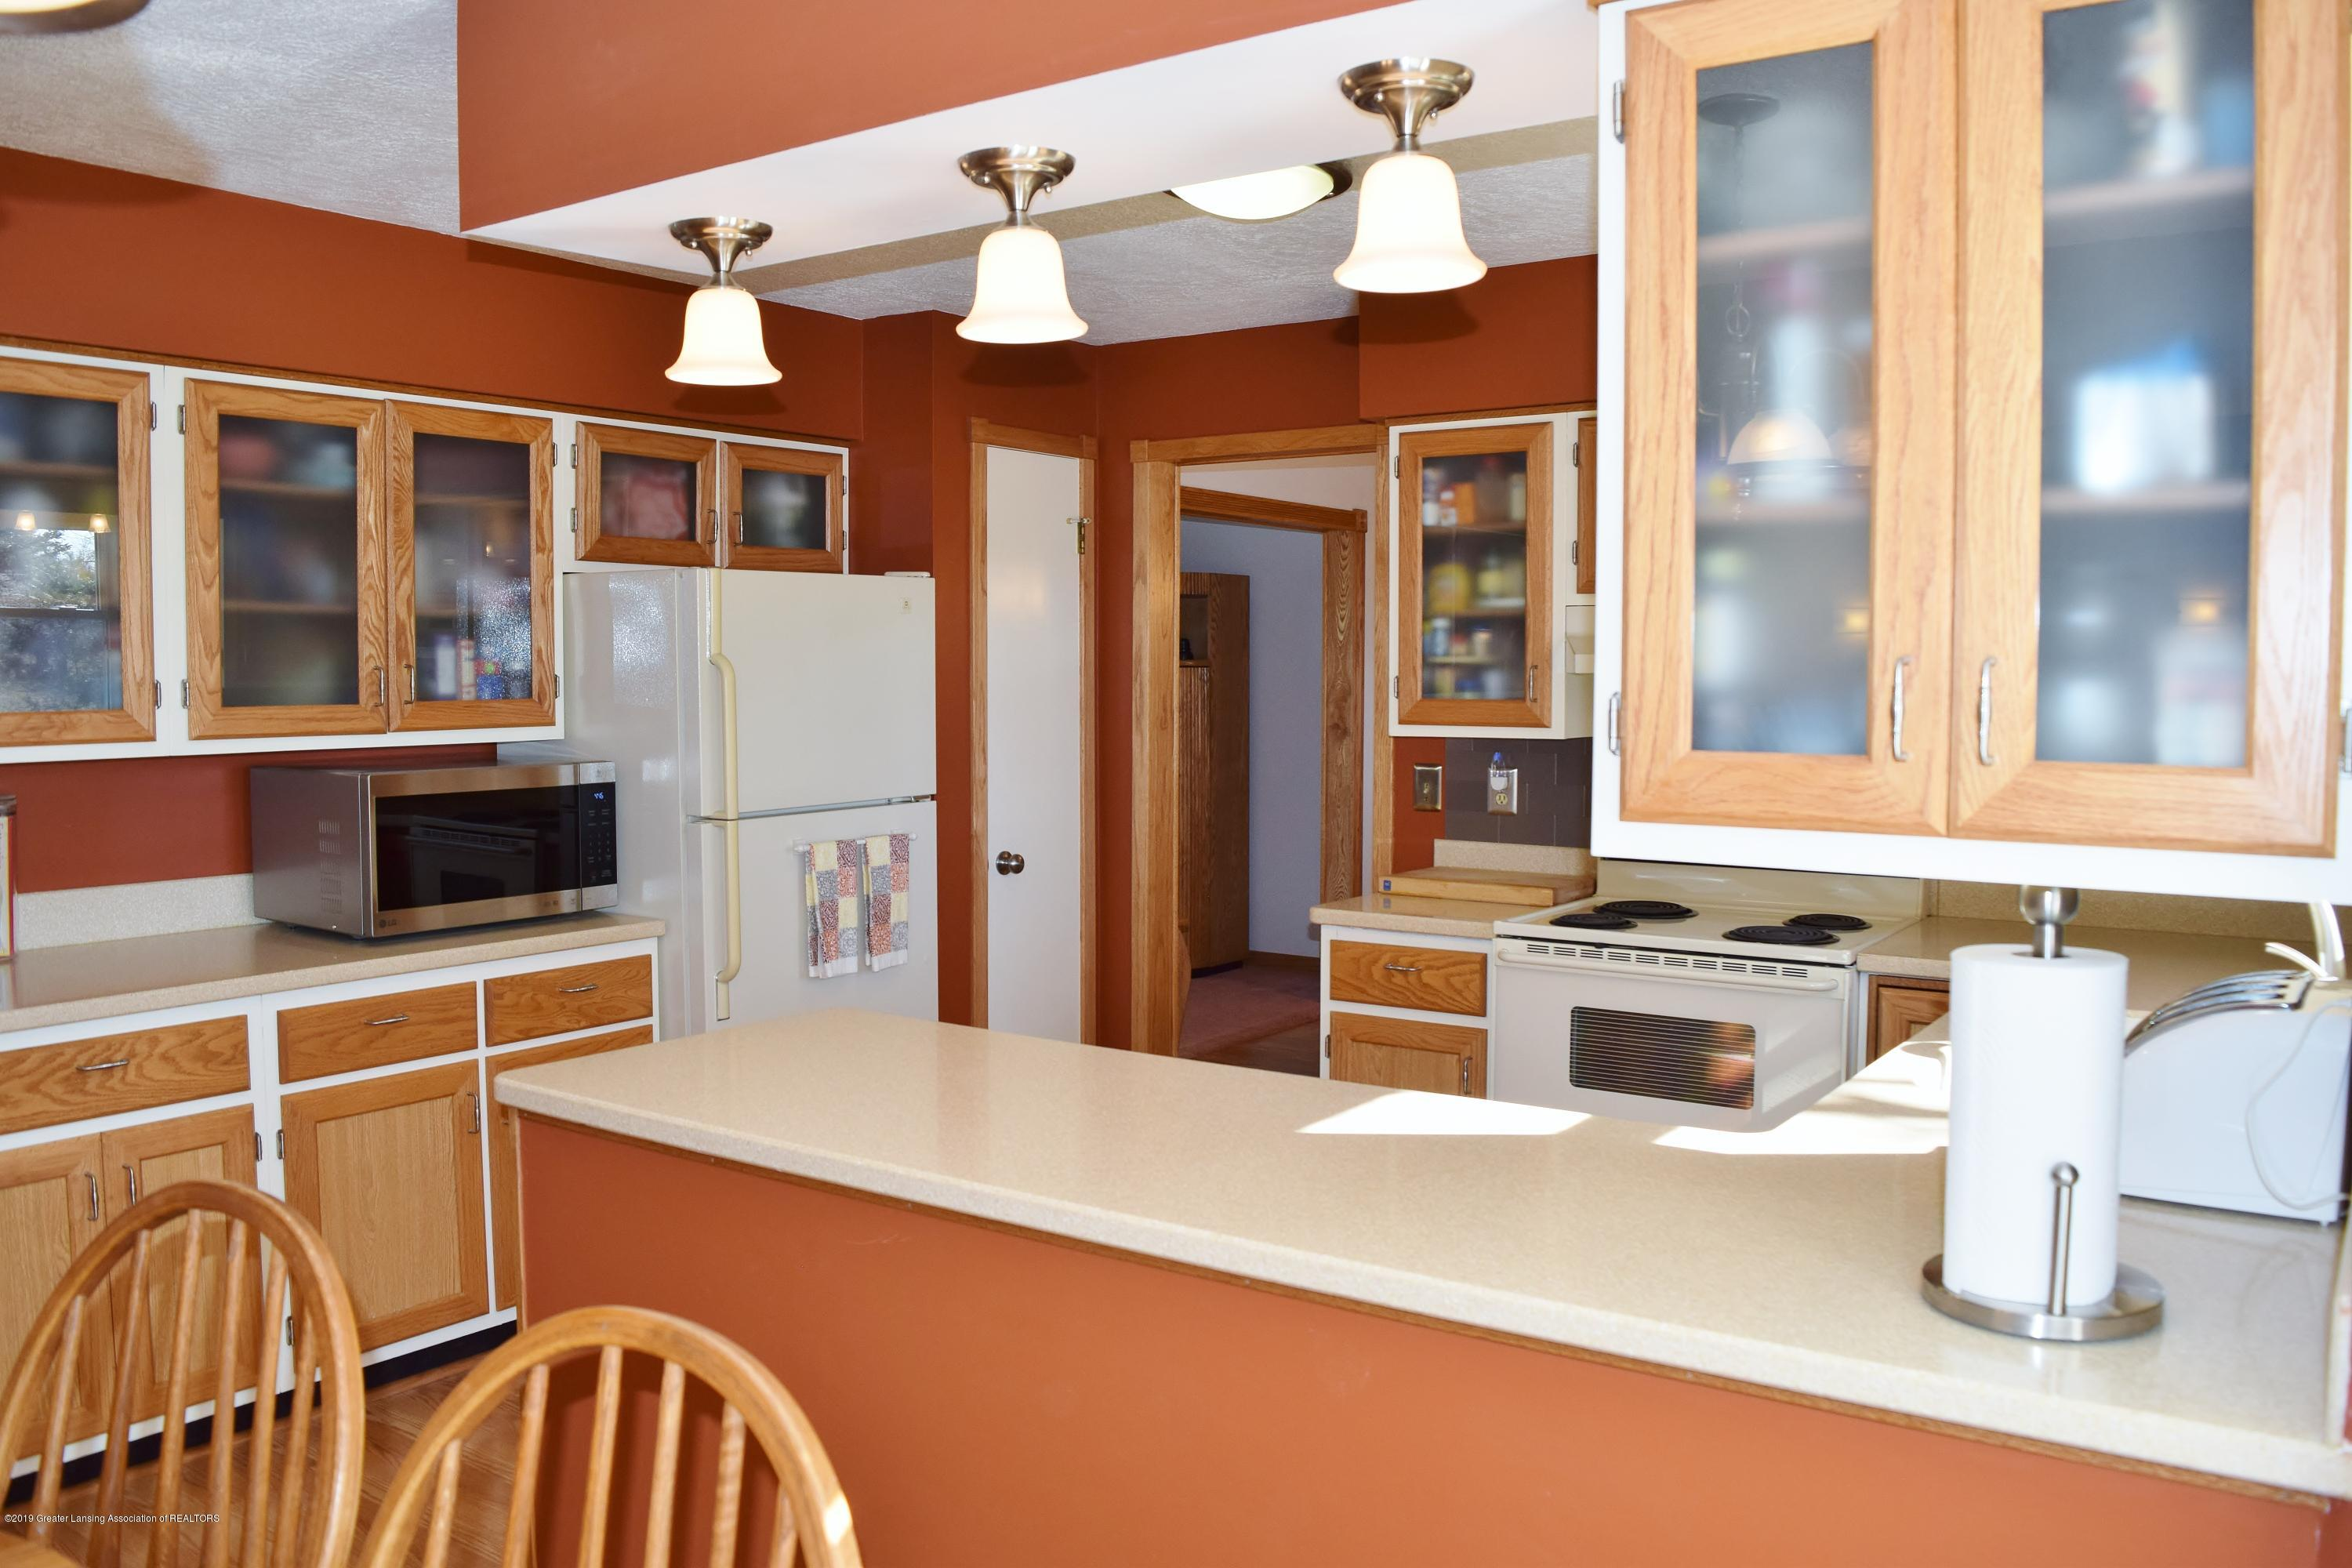 2817 N Gunnell Rd - Kitchen - 17